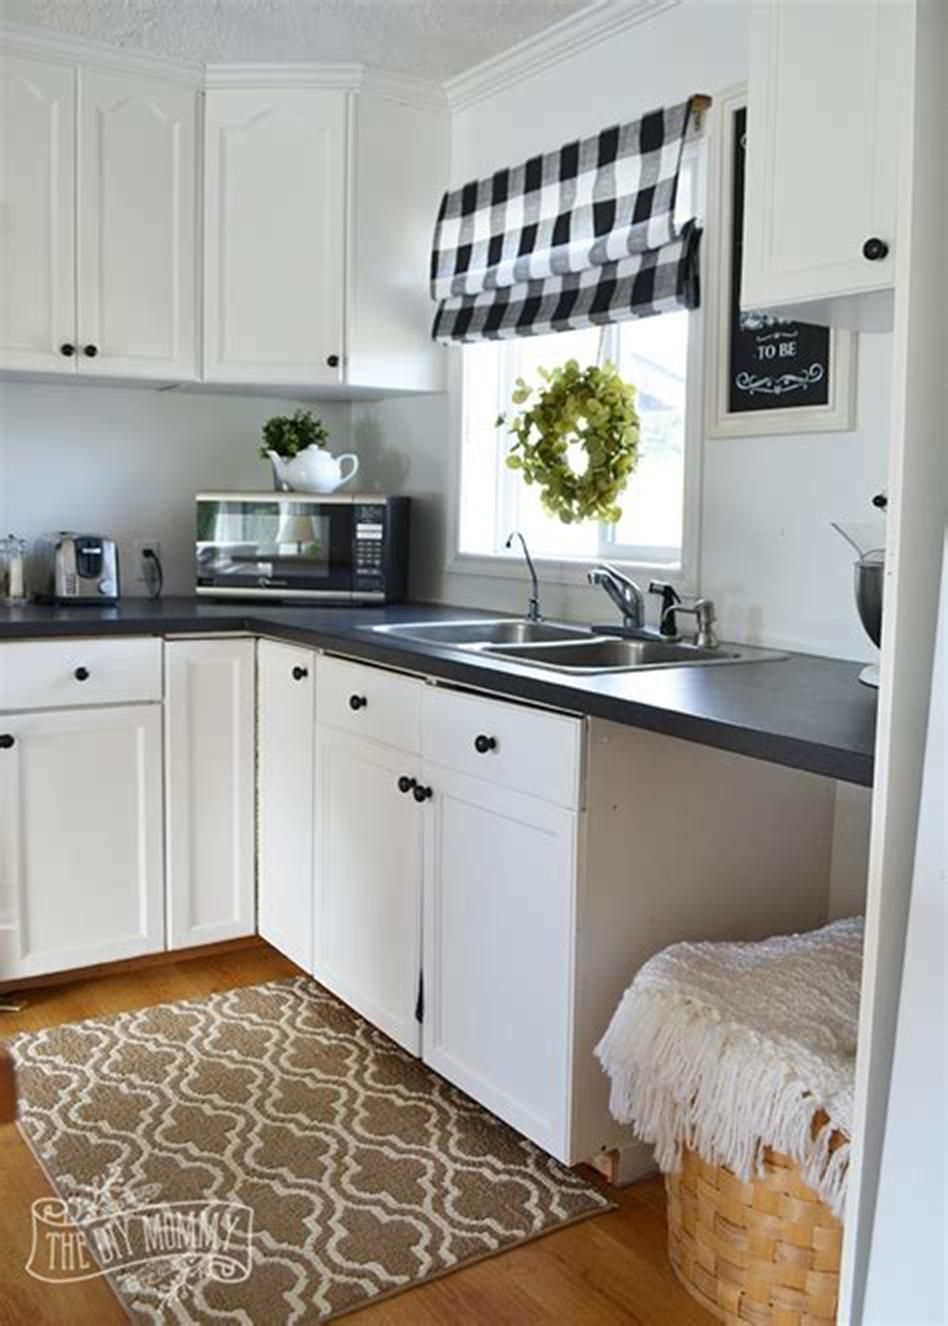 30 inspiring kitchen design and decorating ideas on a budget 60 30 inspiring kitchen design and on kitchen ideas on a budget id=96625